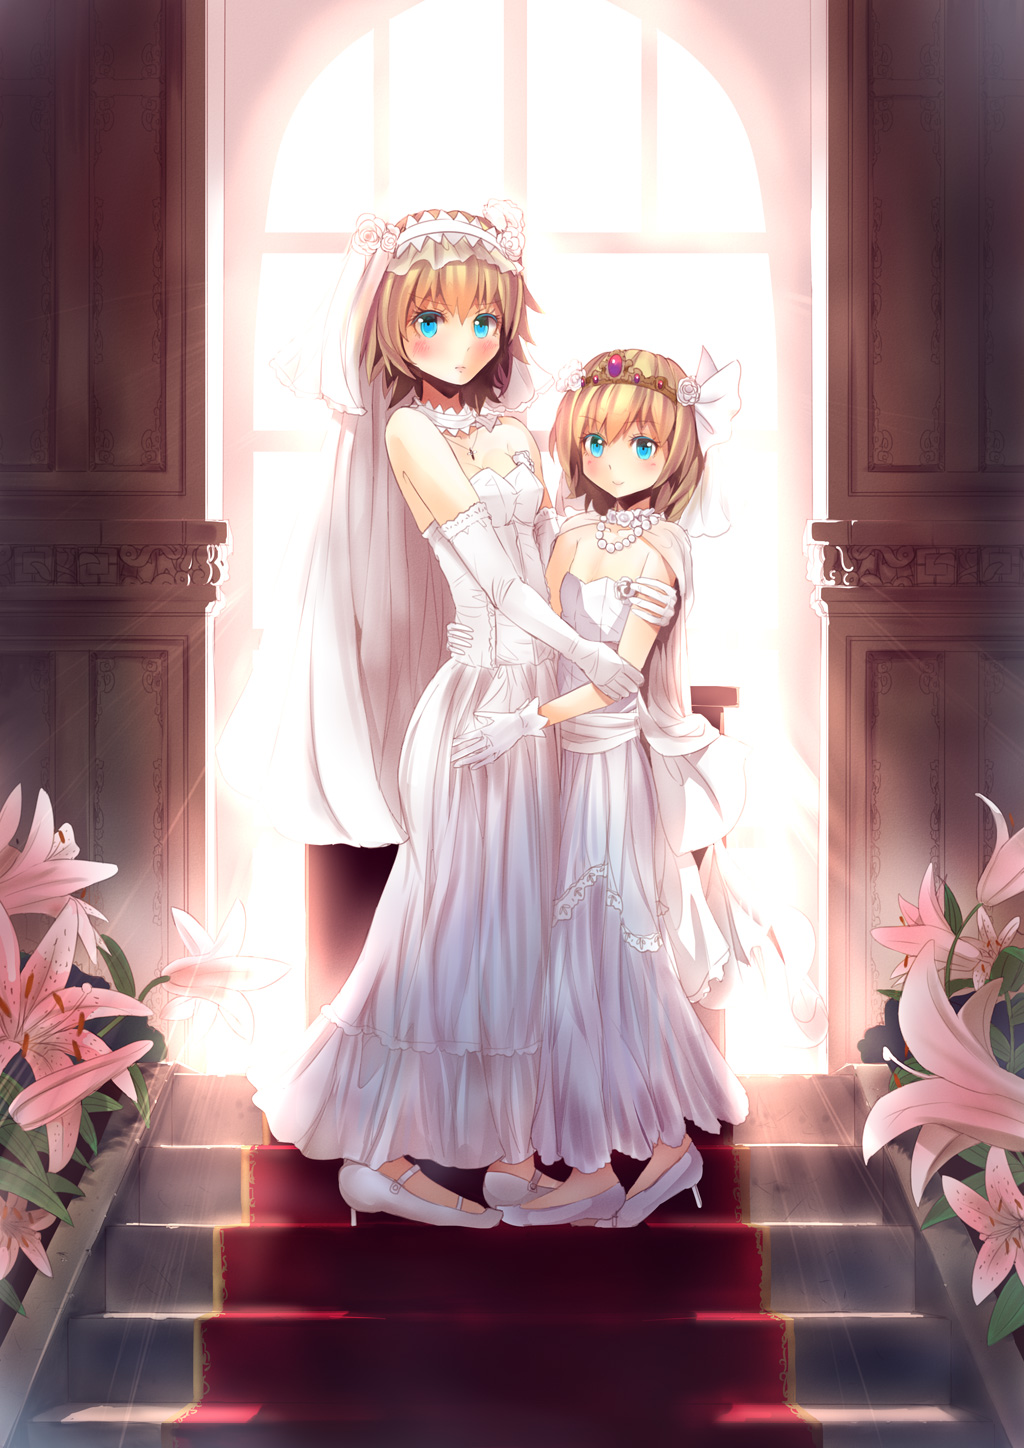 Touhou touhou project mobile wallpaper 1552720 for Anime wedding dress up games